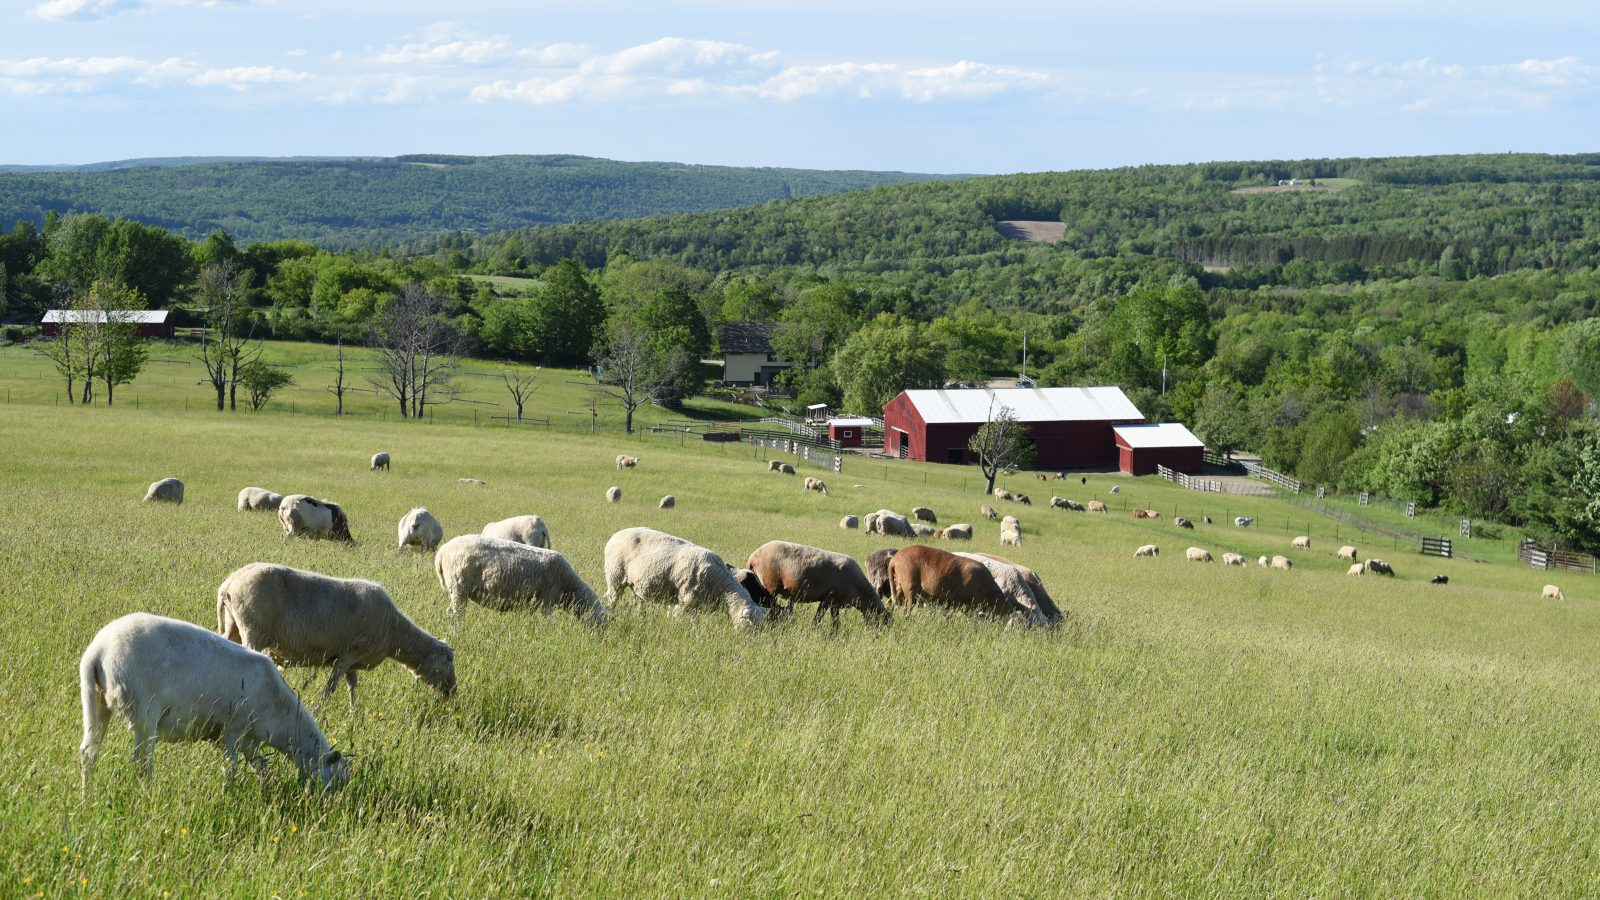 Sheep pasture landscape at Farm Sanctuary